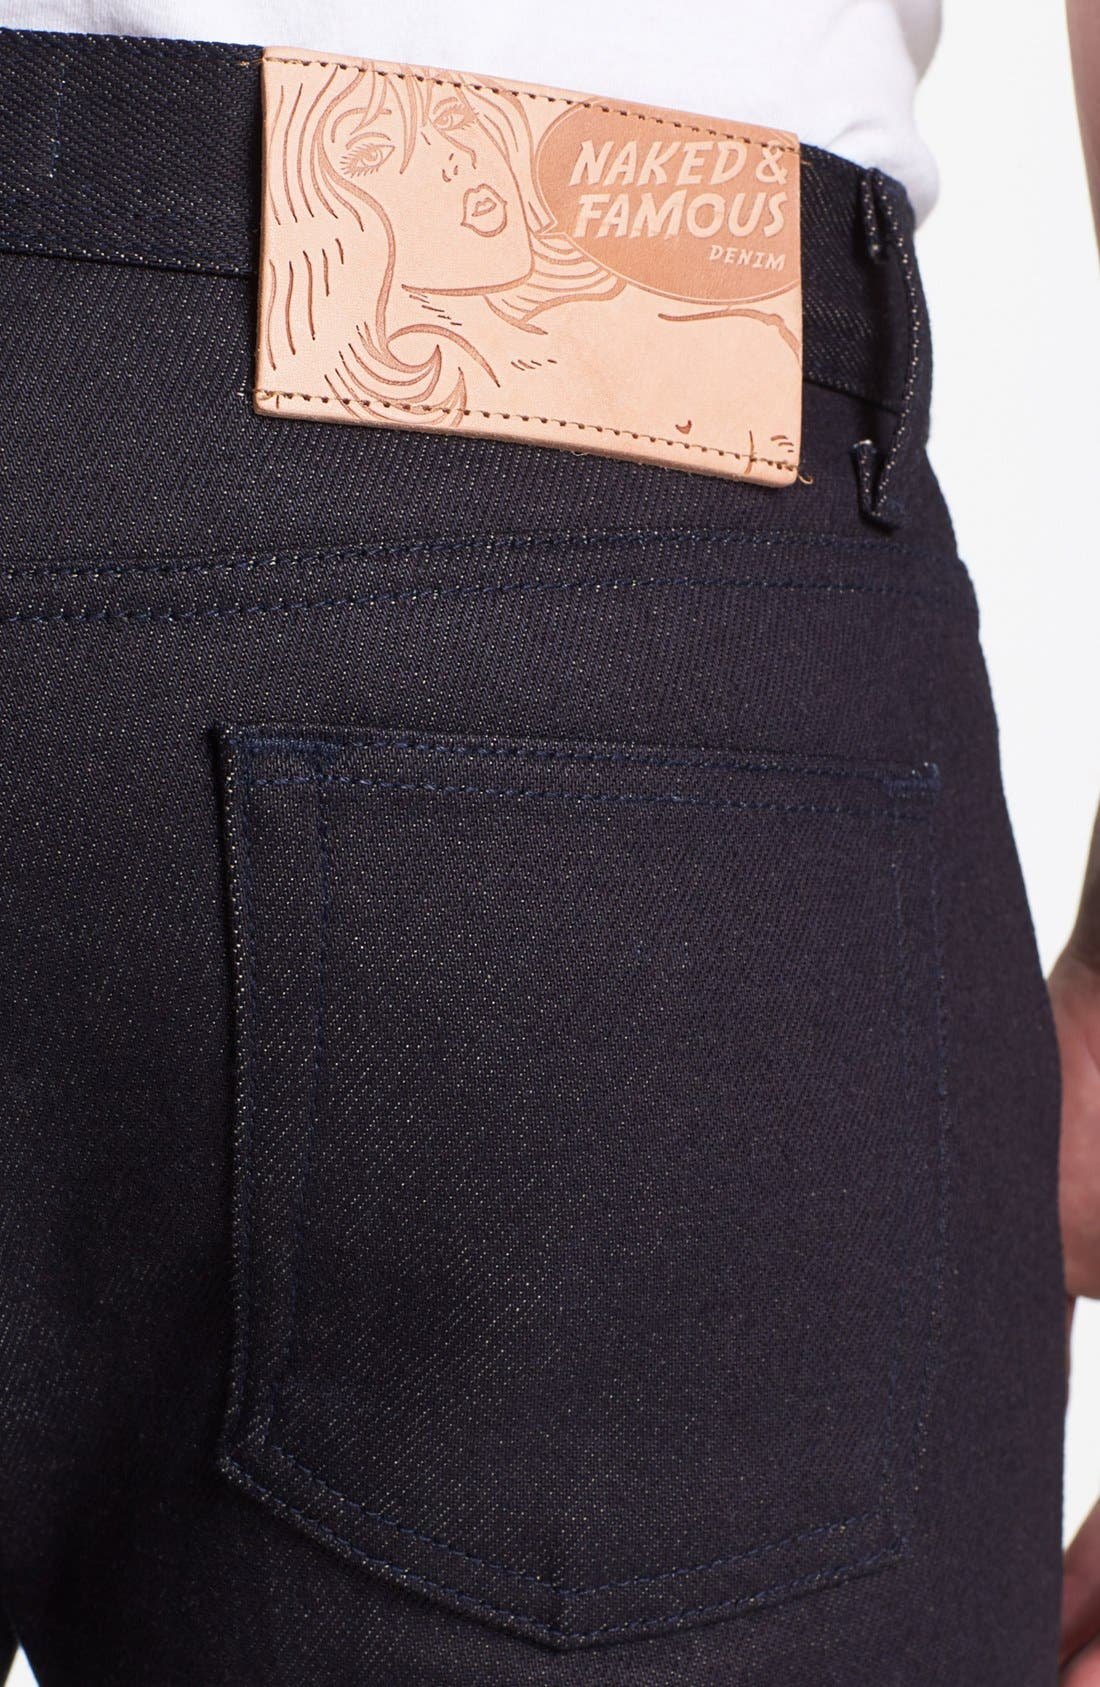 Alternate Image 4  - Naked & Famous Denim 'Weird Guy' Slim Fit Selvedge Jeans (Elephant 3)